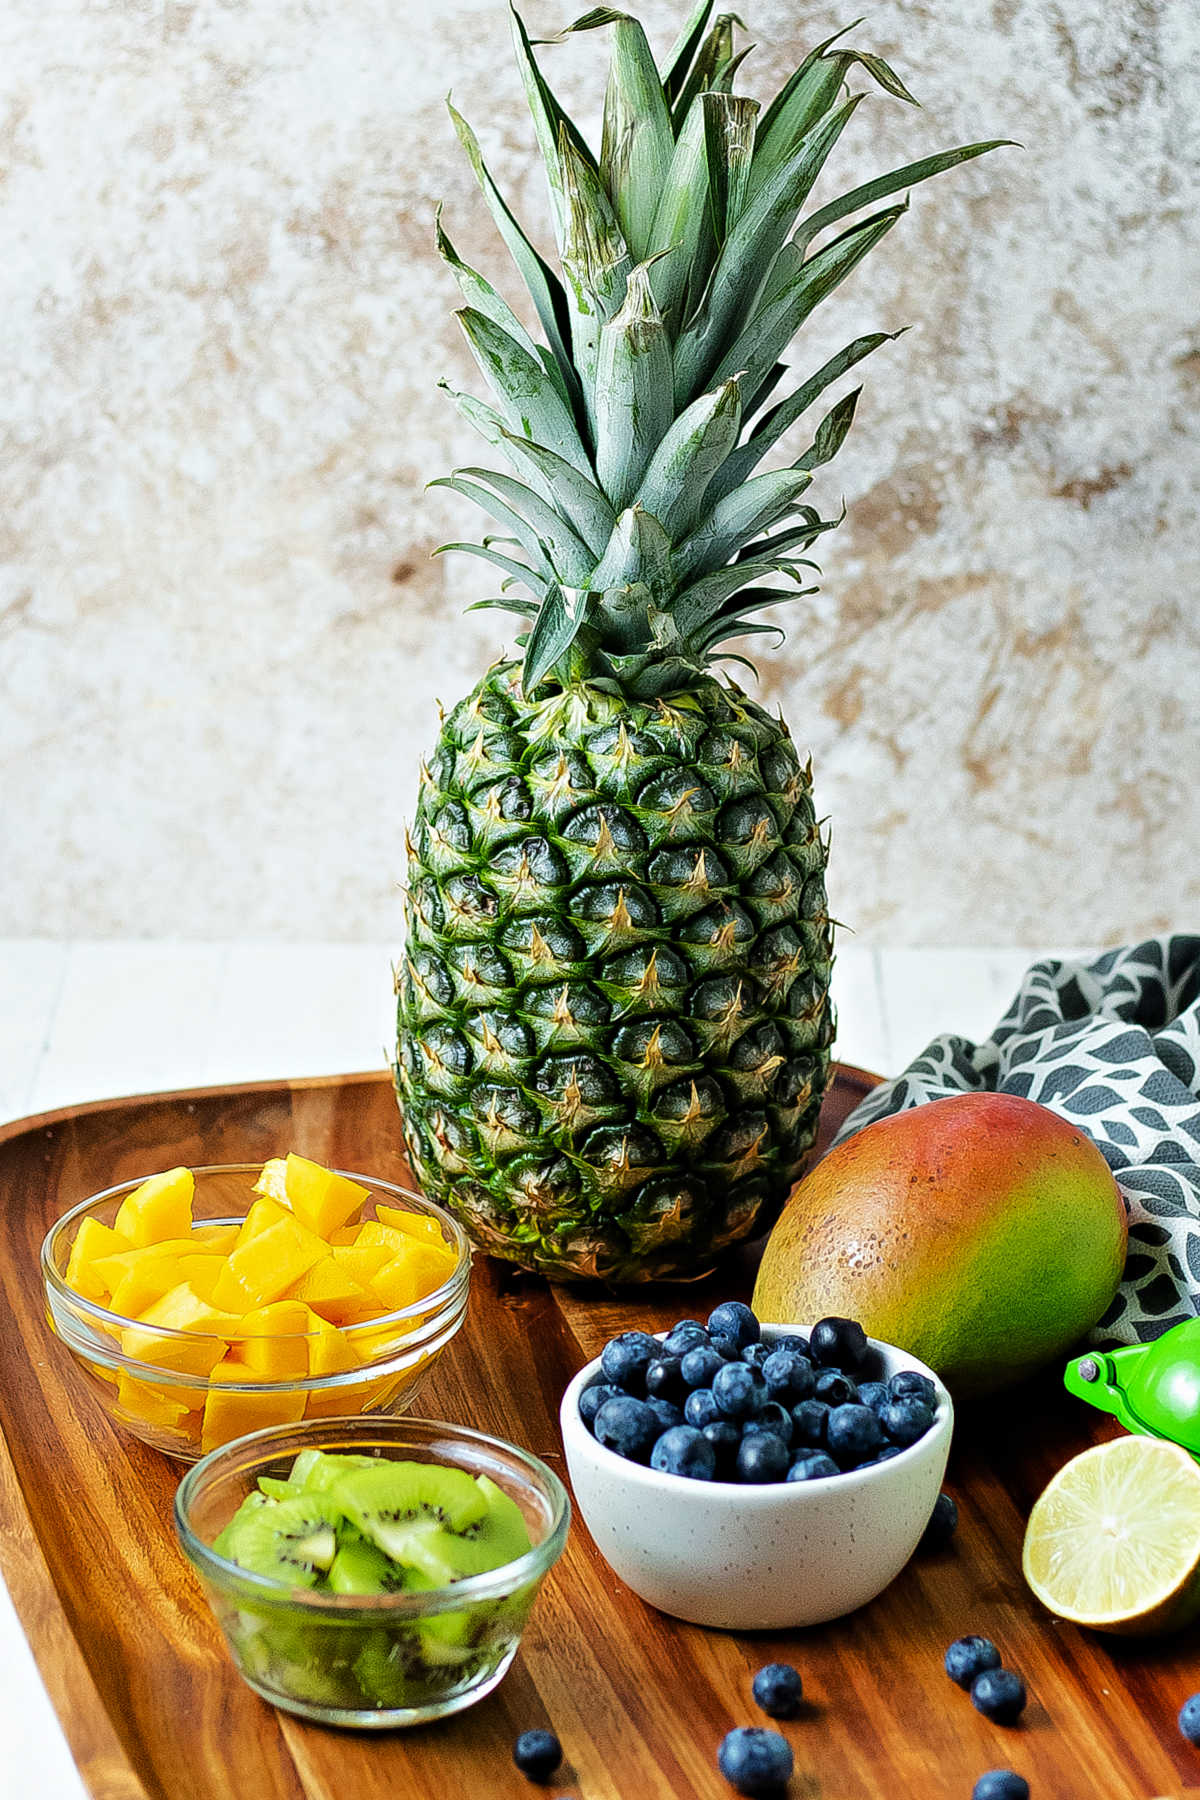 ingredients for tropical fruit salad on a wooden tray: fresh pineapple, mango chunks, sliced kiwi, and blueberries.